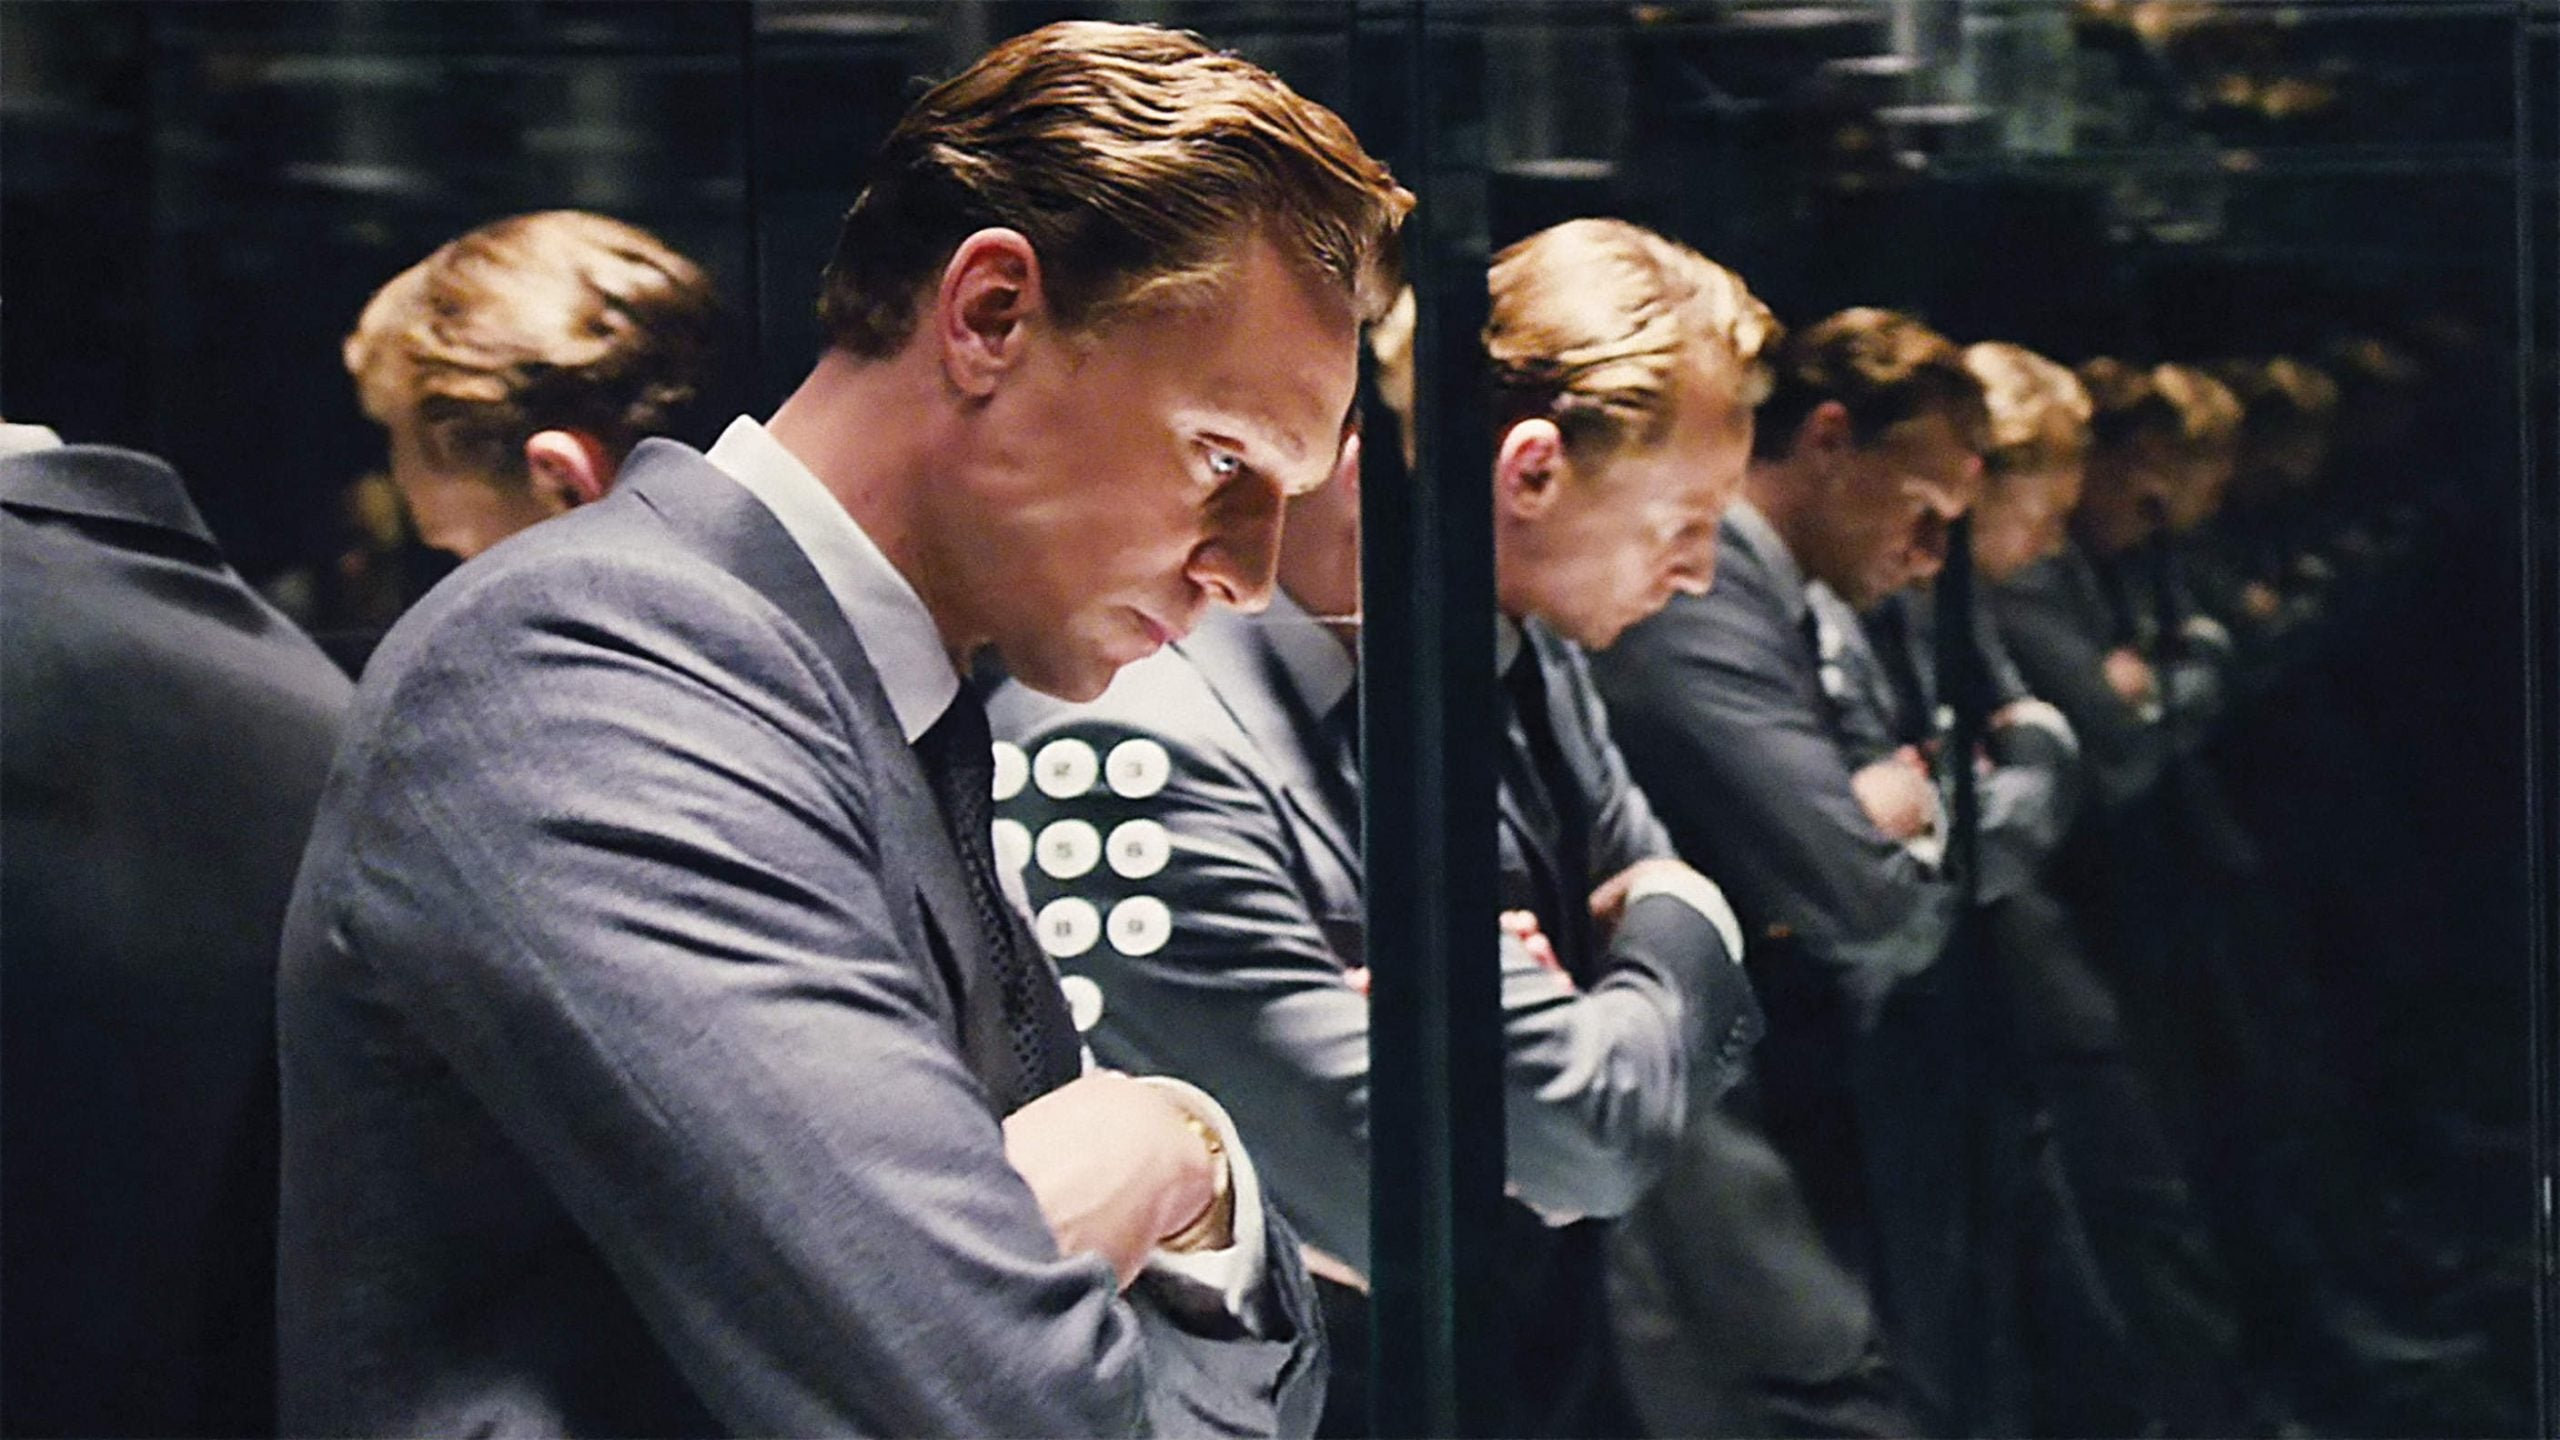 What would J G Ballard have made of the new High-Rise film?